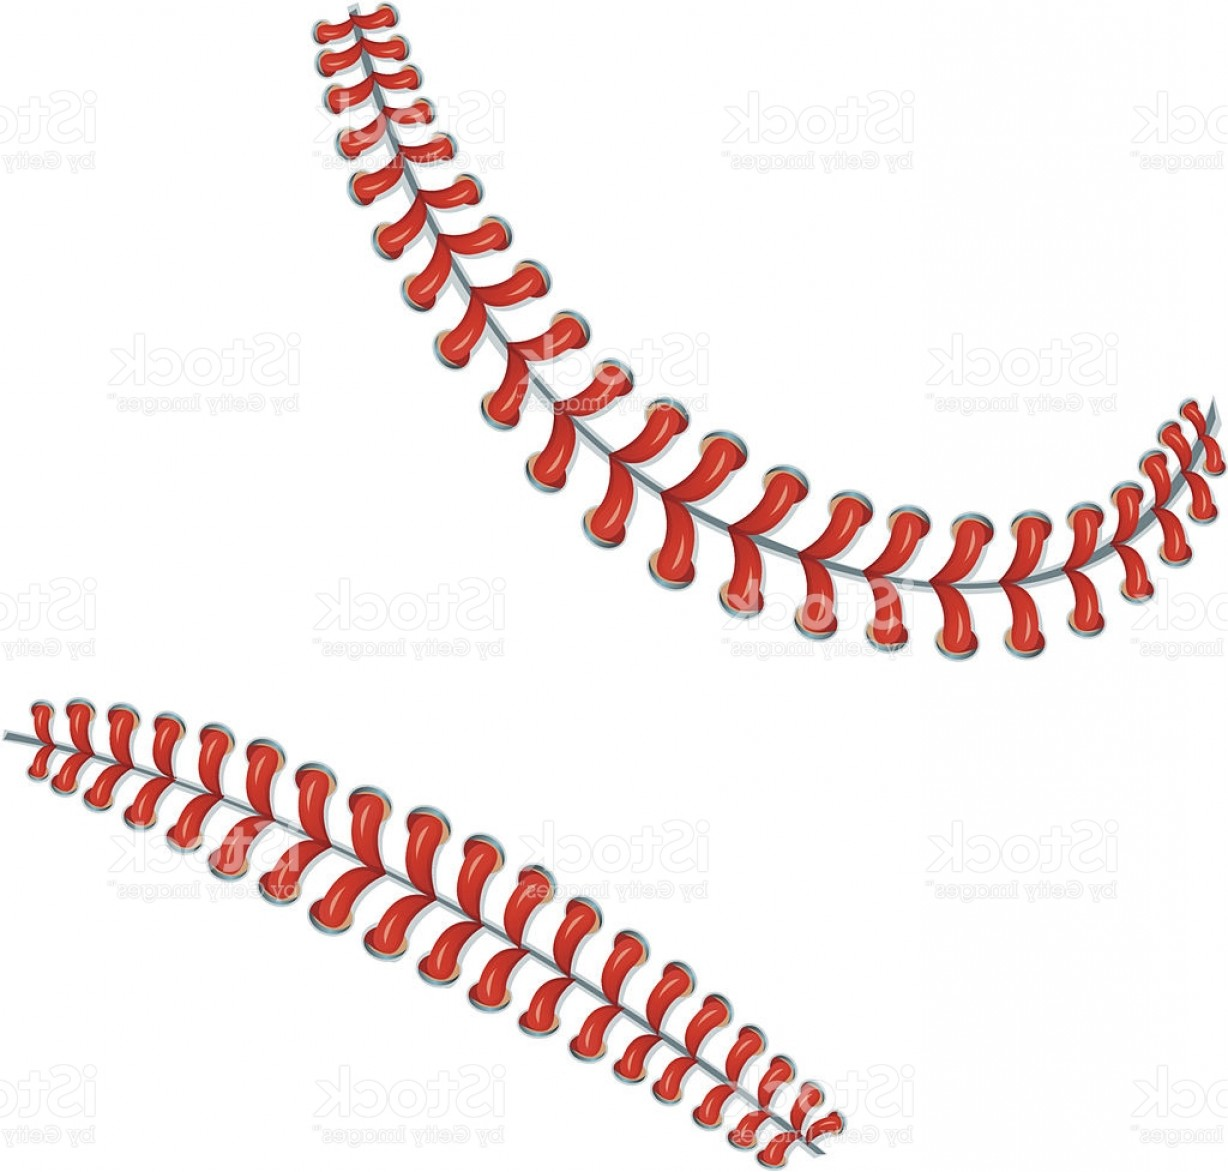 Softball Laces Vector Art B W: Baseball Stitches Or Laces Background Gm